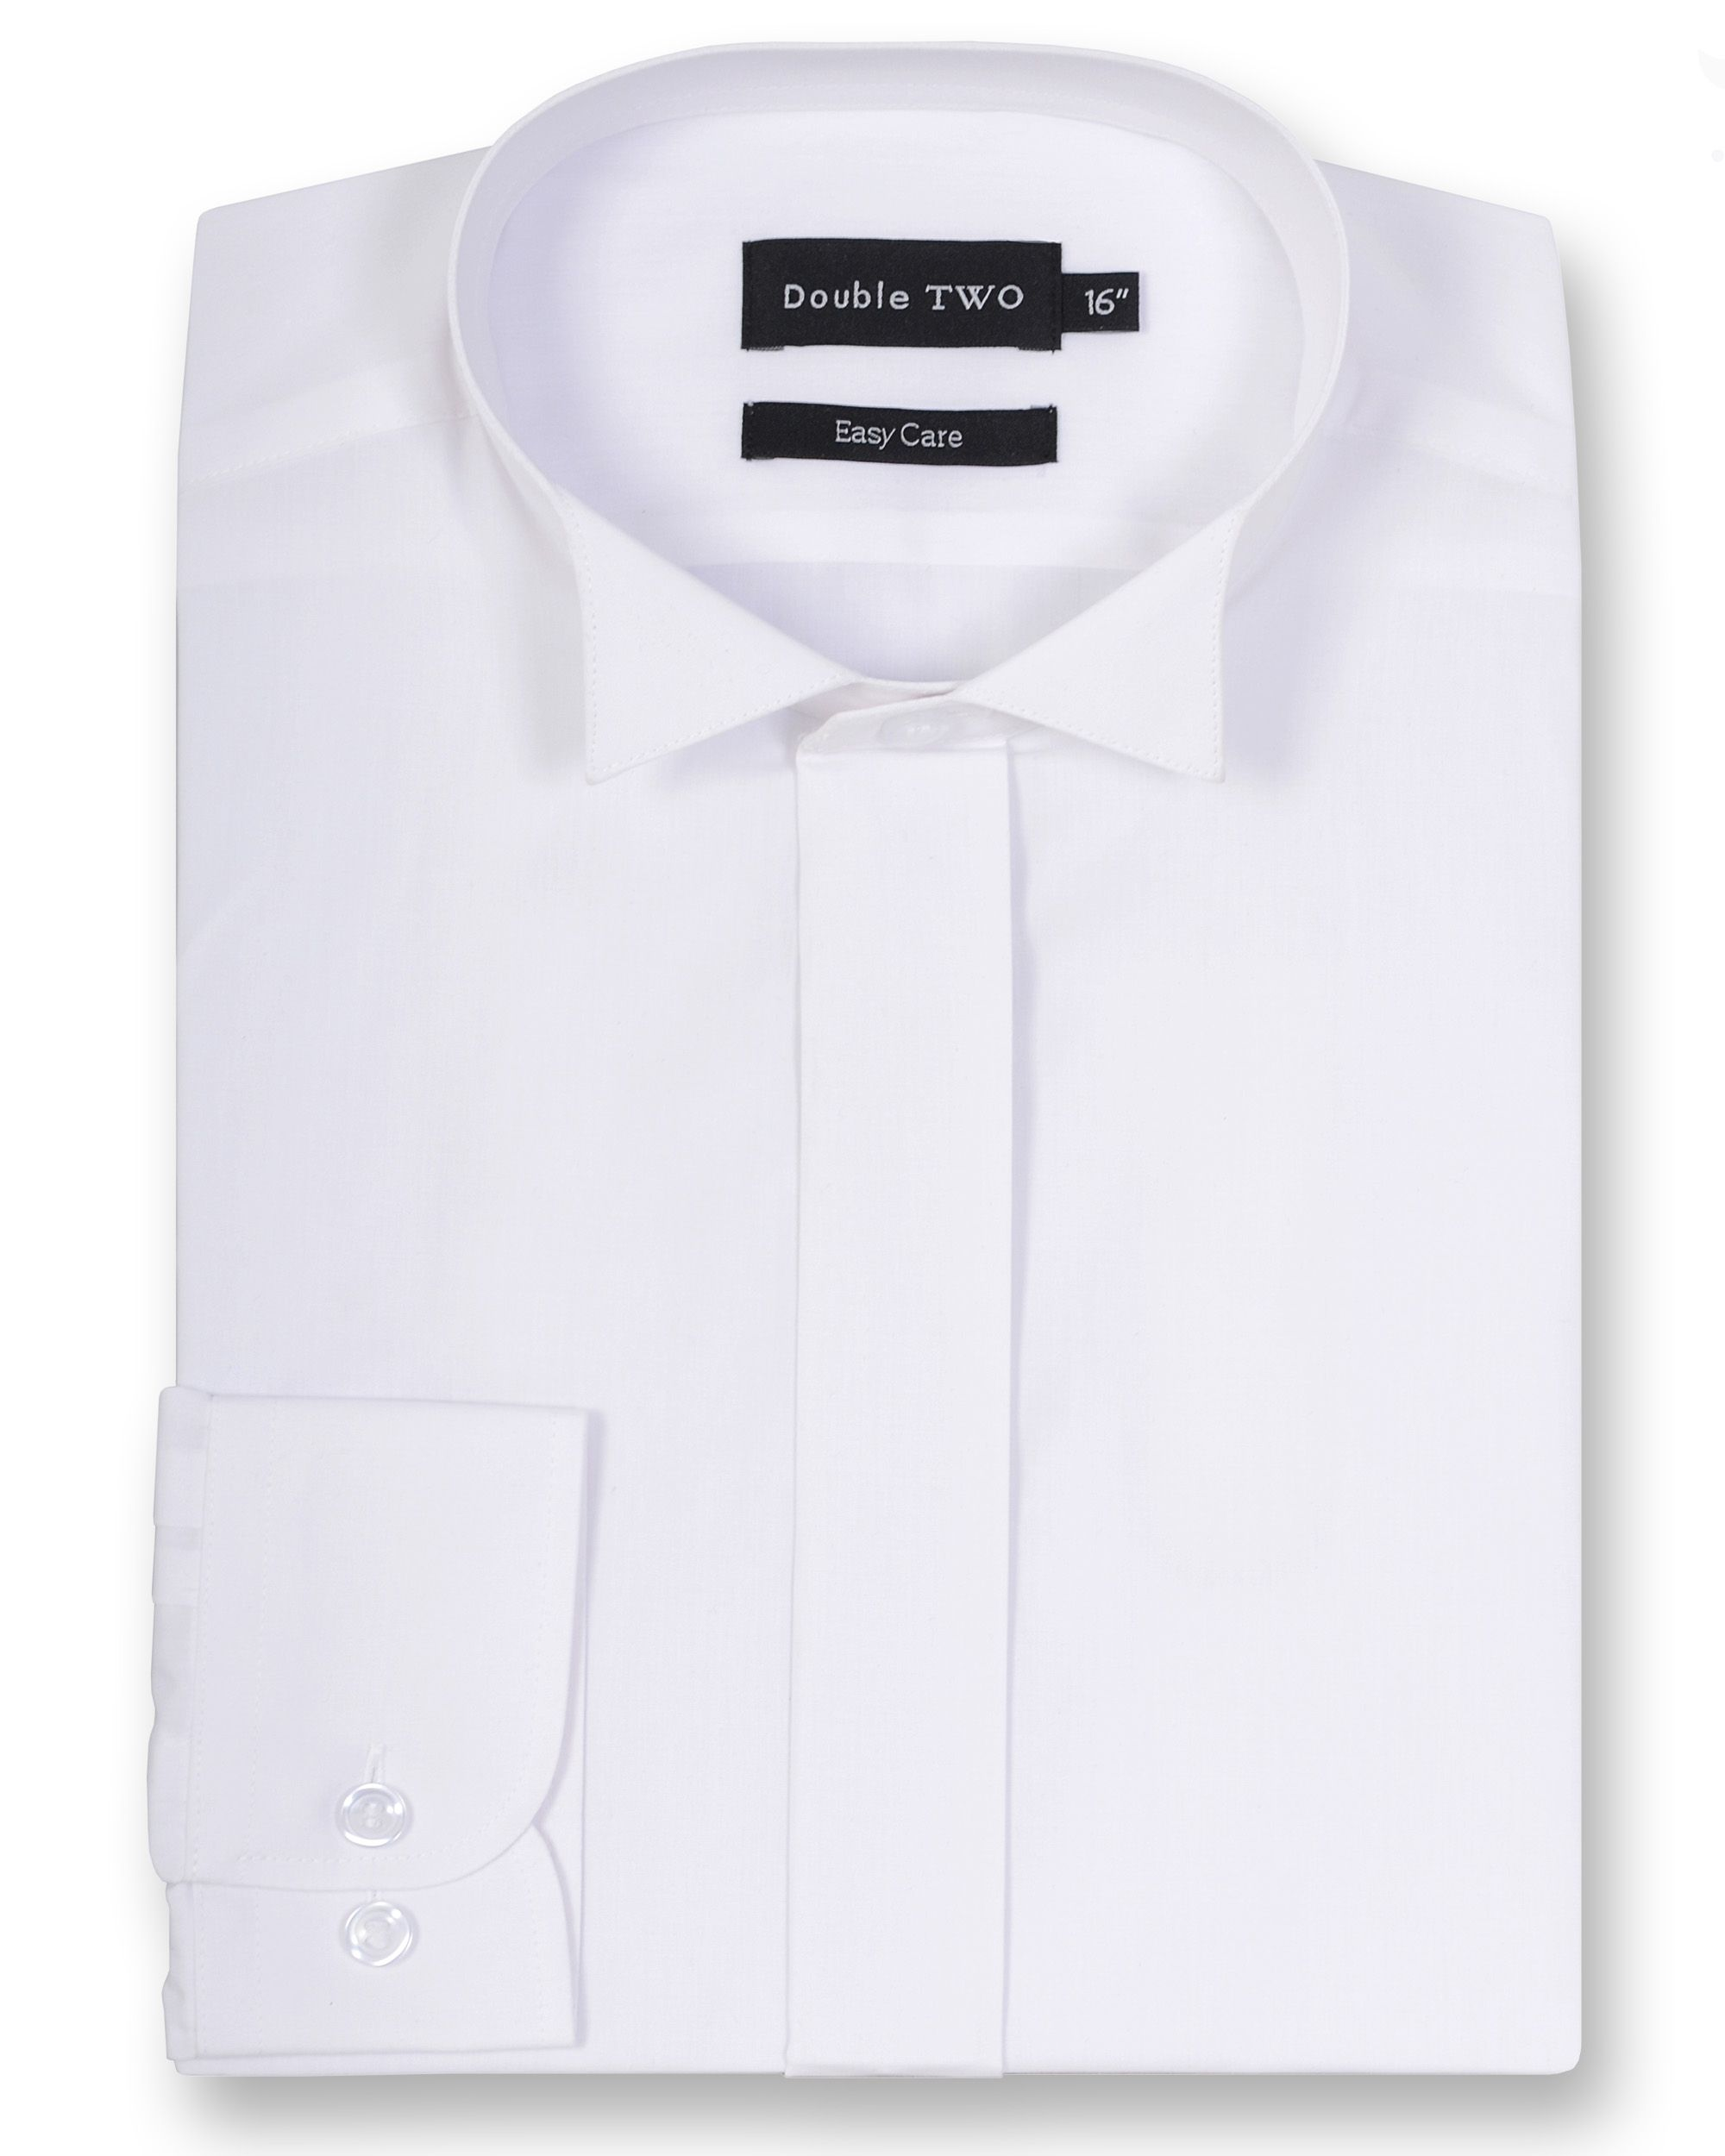 Mens Double TWO Wing collar plain fly front dress shirt White